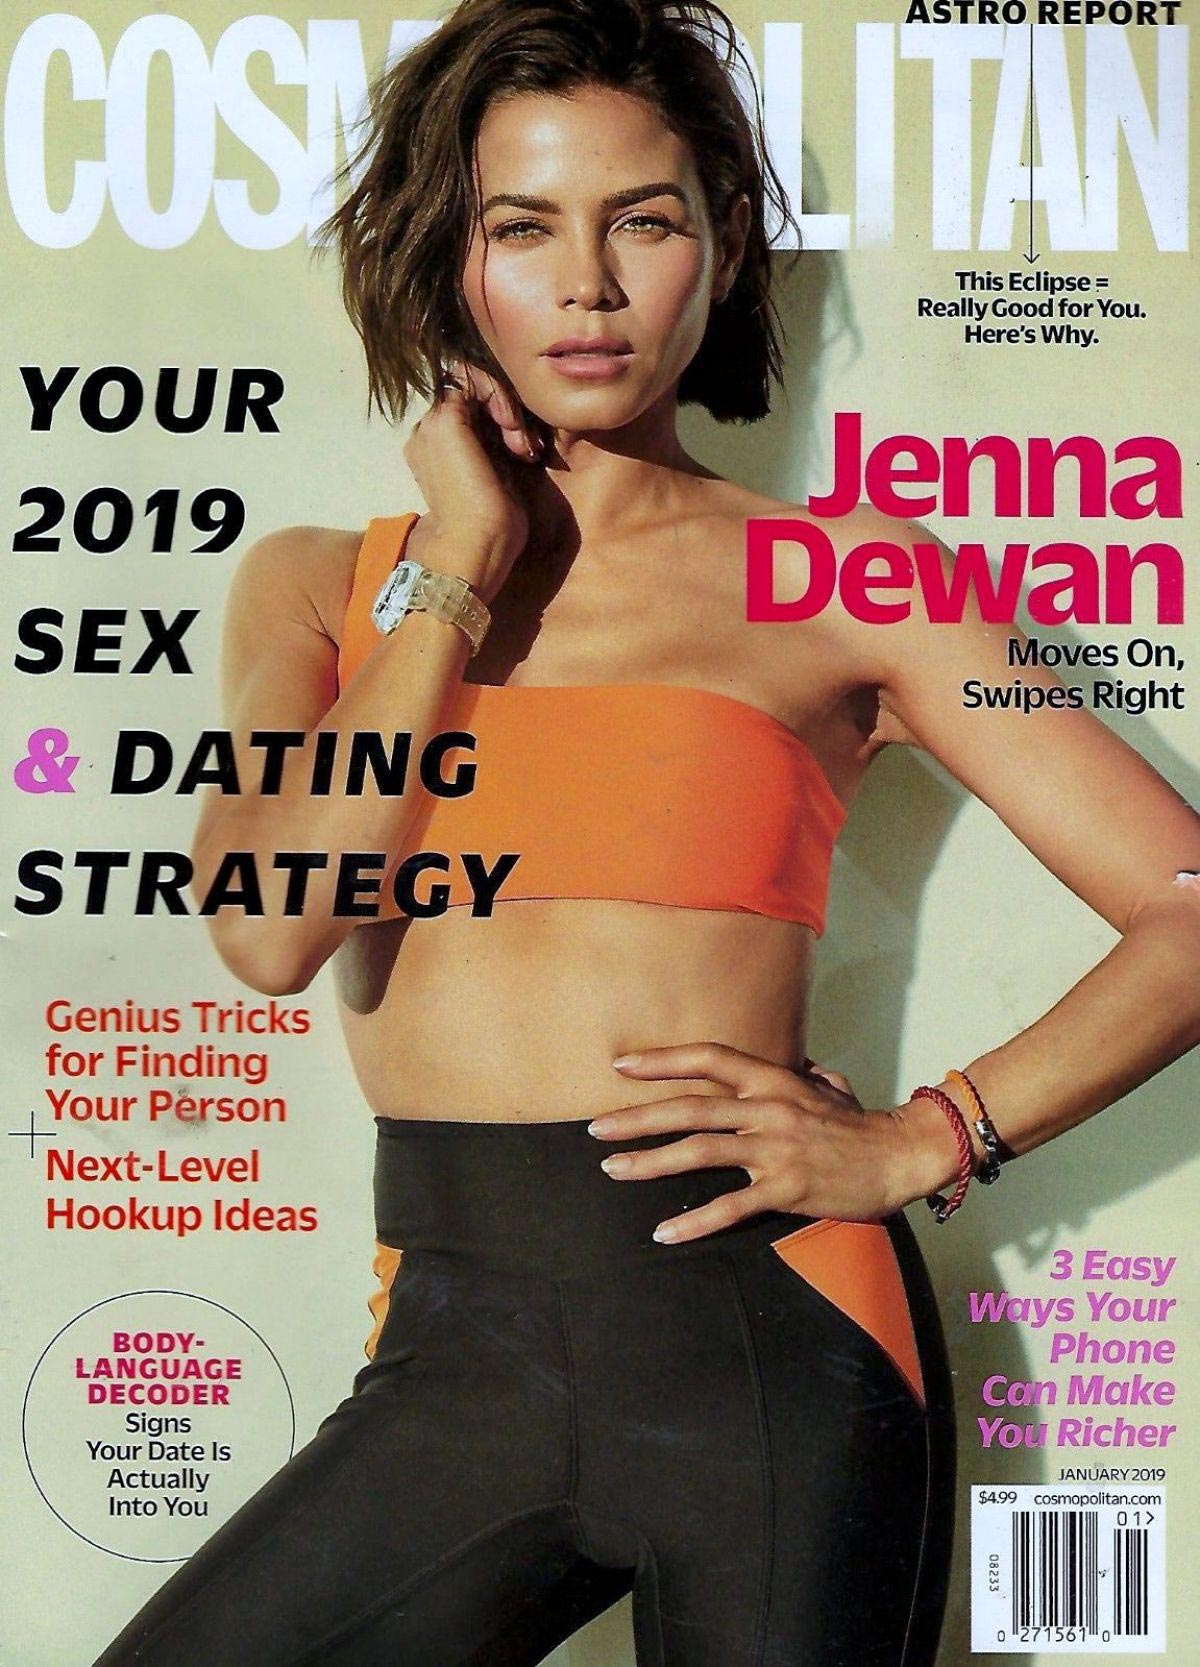 Jenna Dewan on the Cover of Cosmopolitan Magazine, January 2019 1